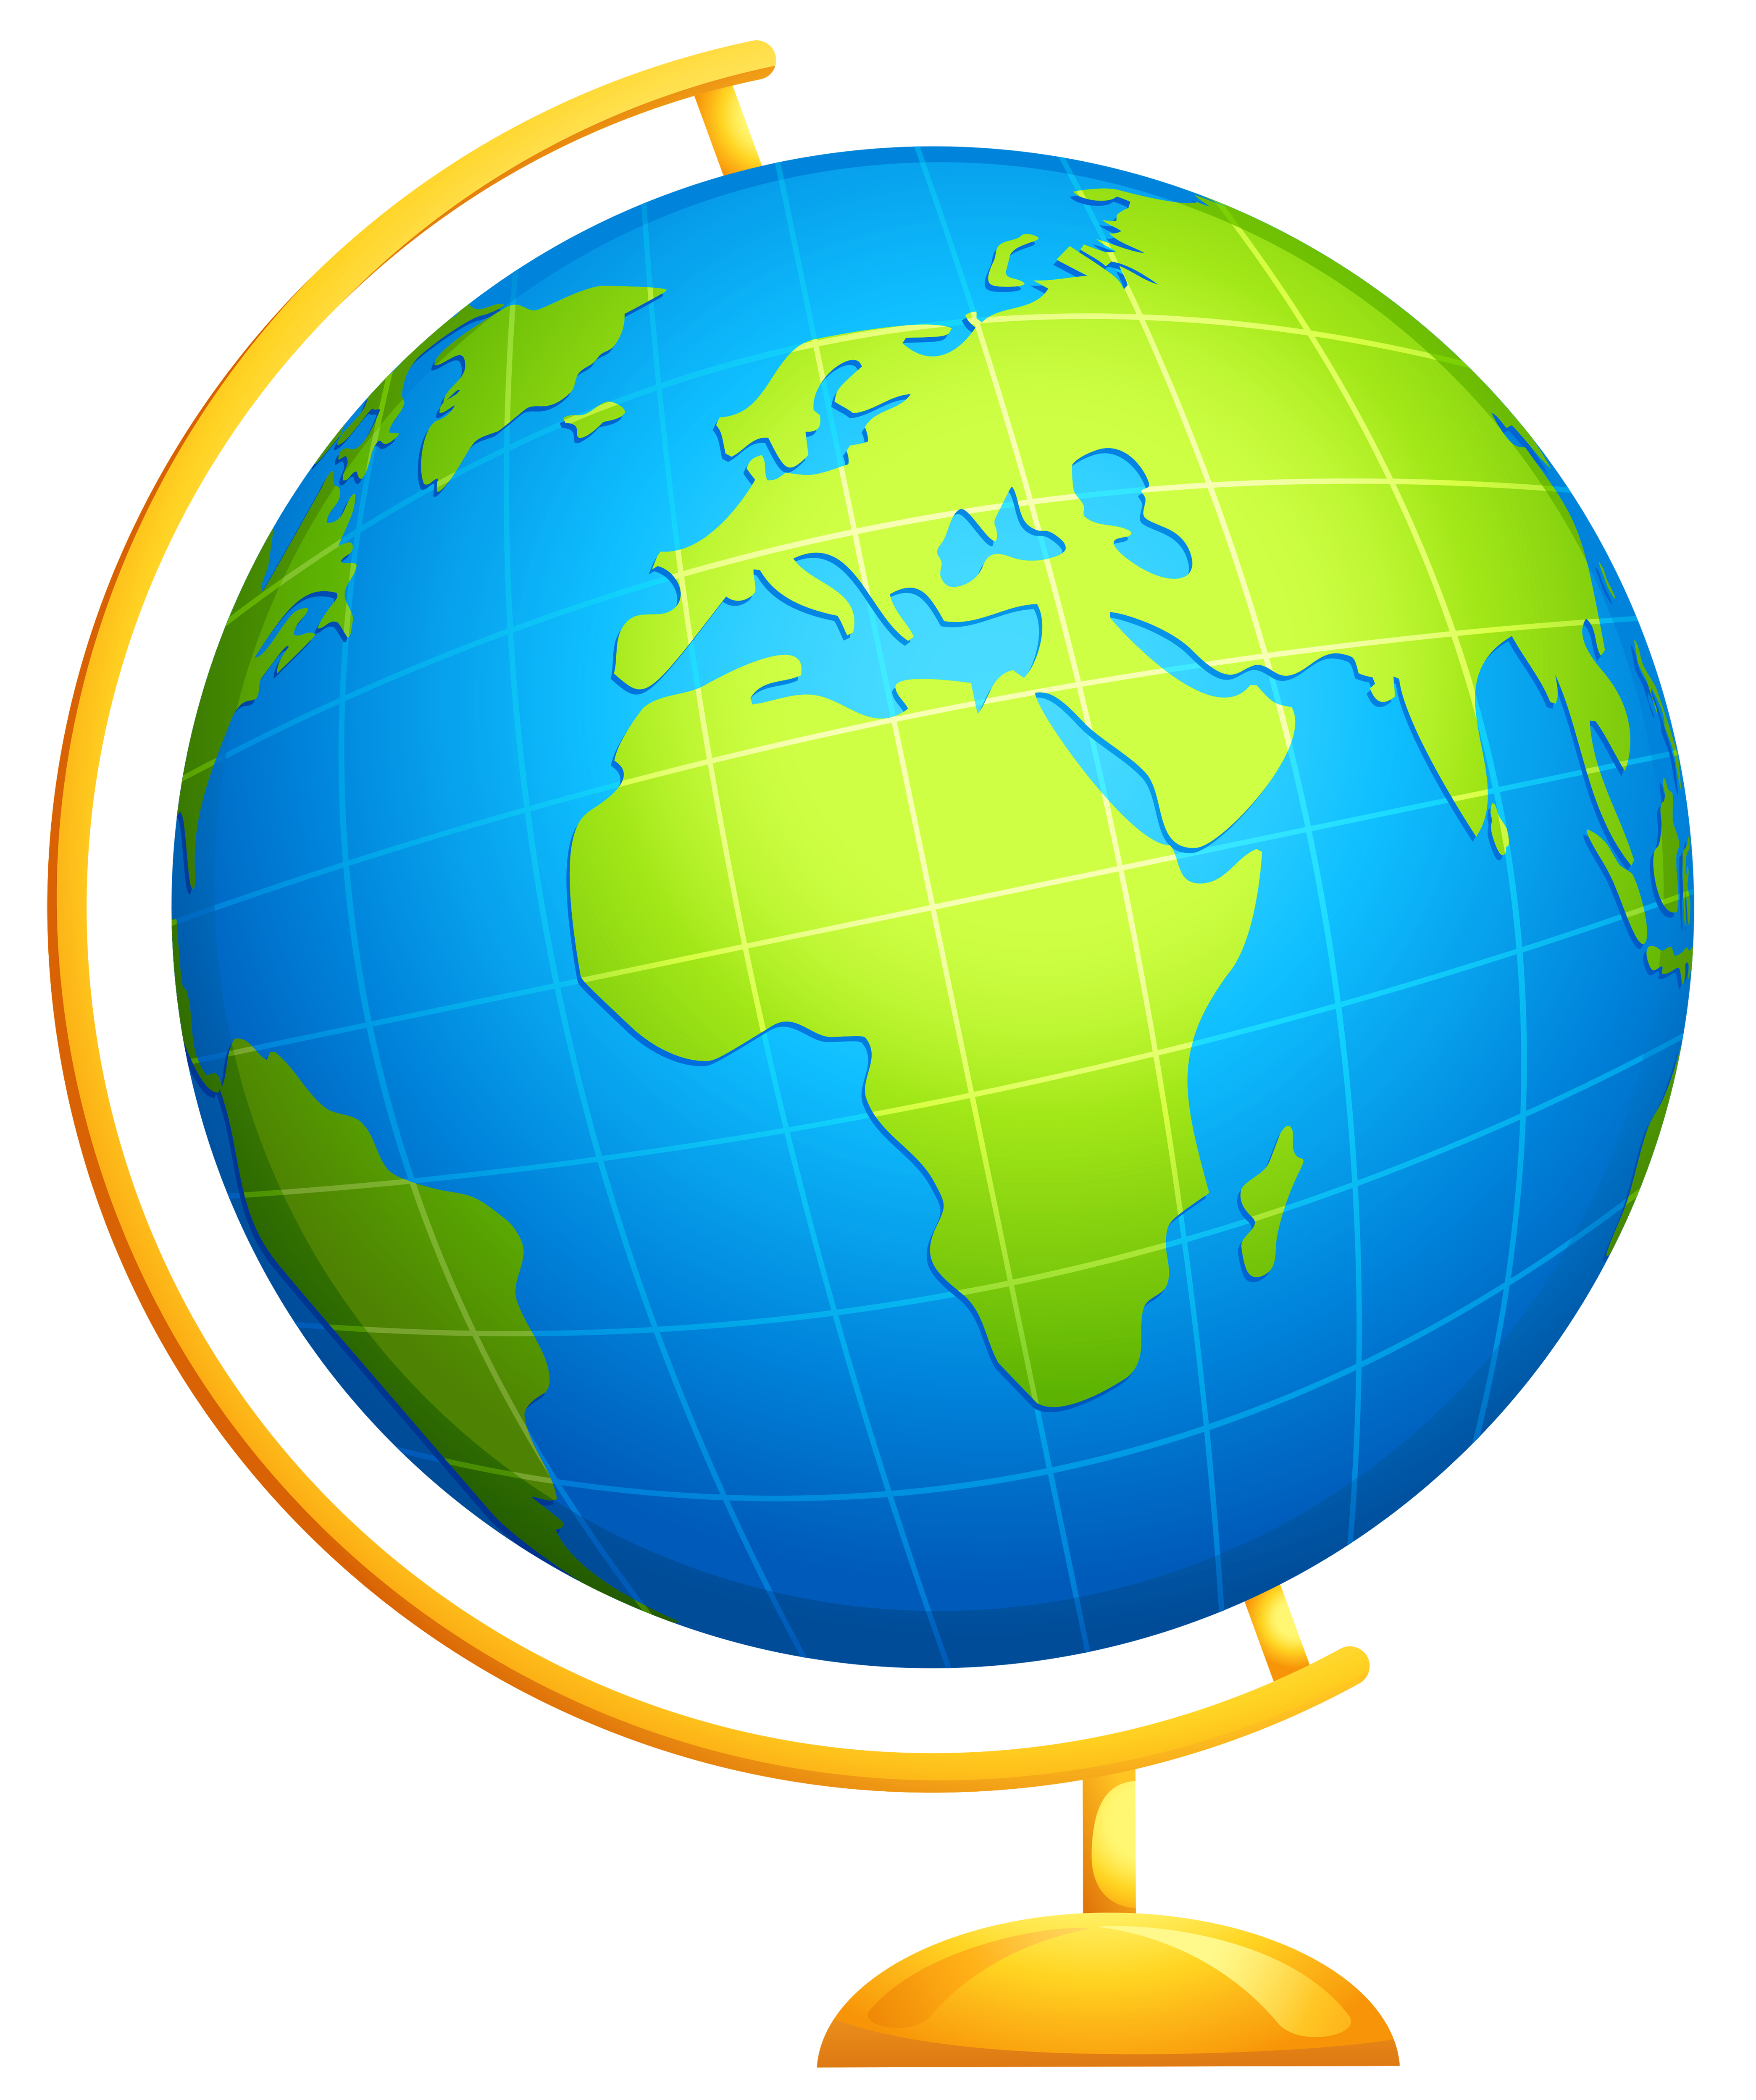 picture of the globe clipart best globe clip art transparent globe clipart vector